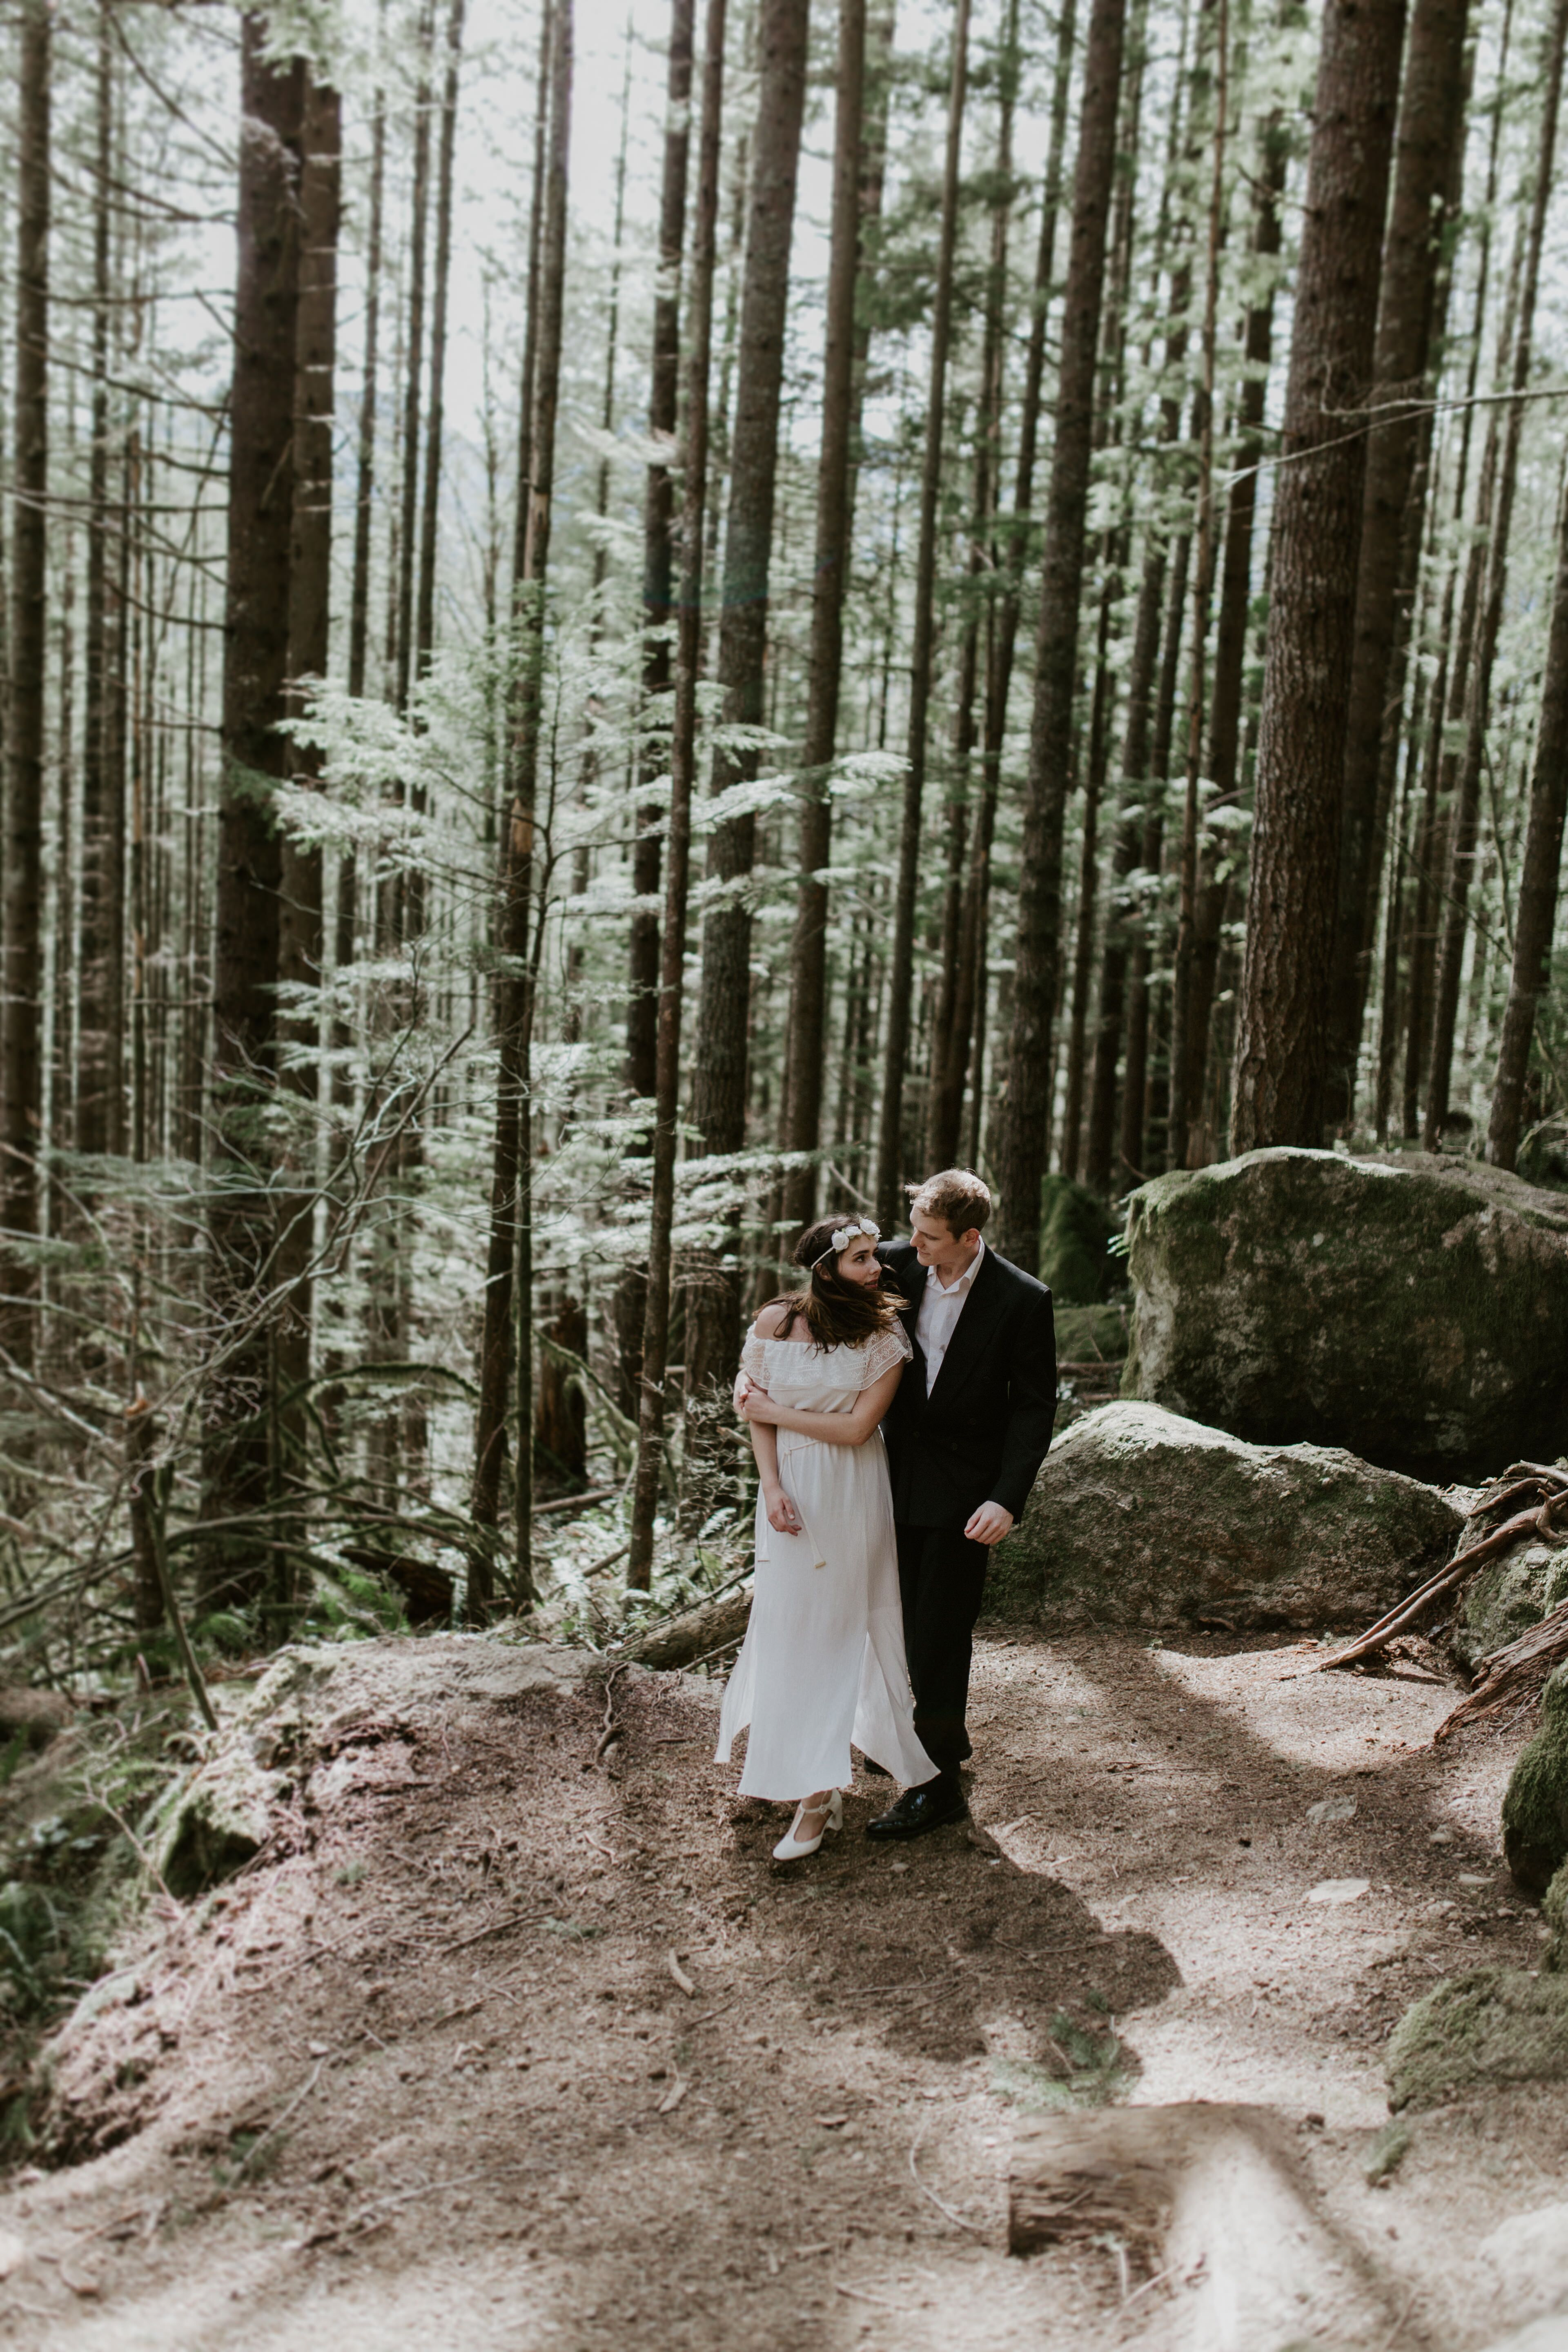 Michale and Winnifred dance near the tress on the trail to Rattlesnake Ledge. Elopement adventure shoot at Rattlesnake Lake, Washington.